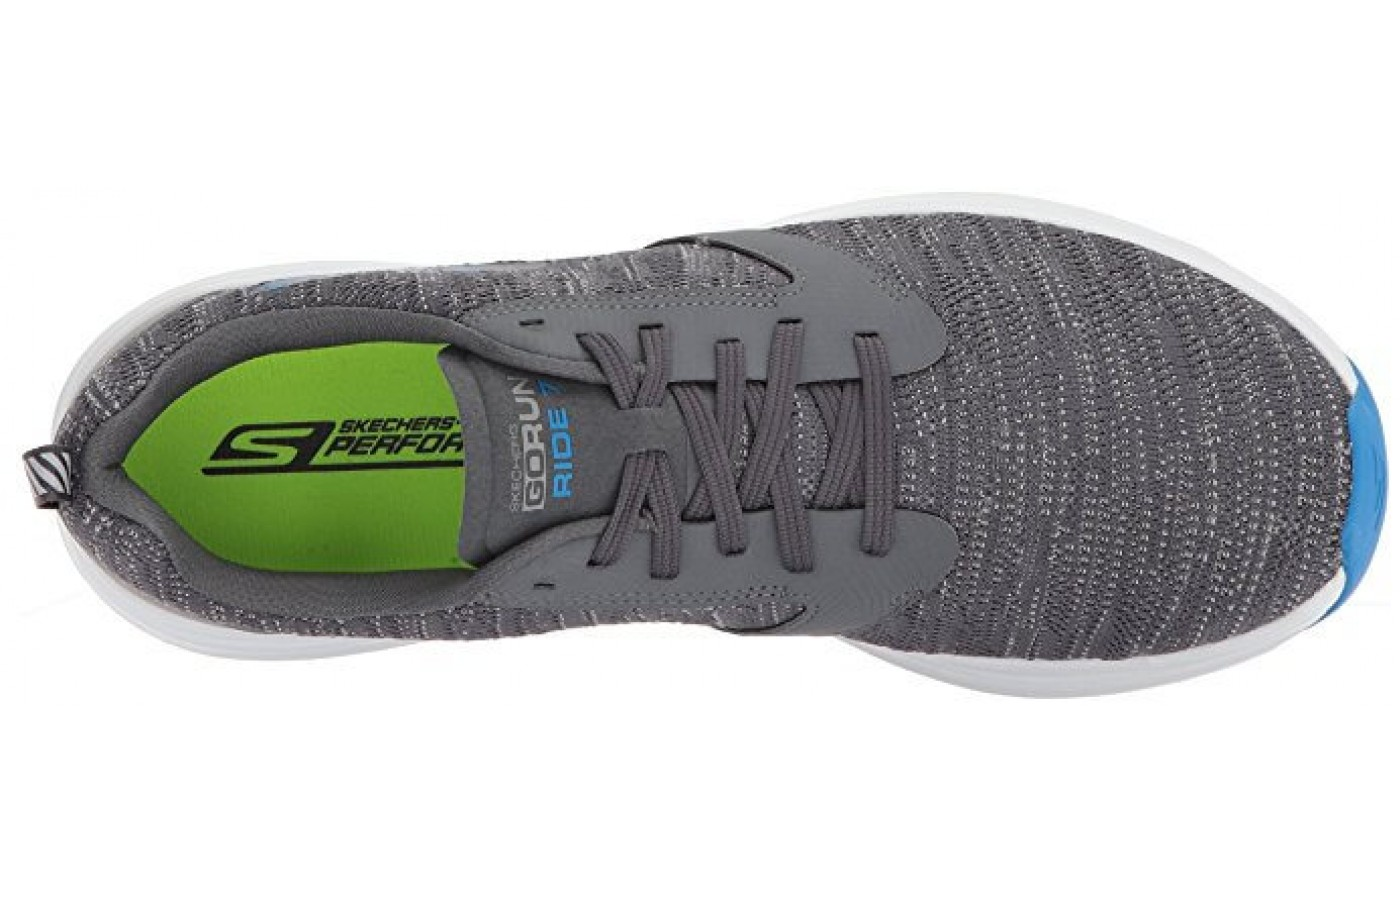 The Skechers GORun Ride 7 lacing system